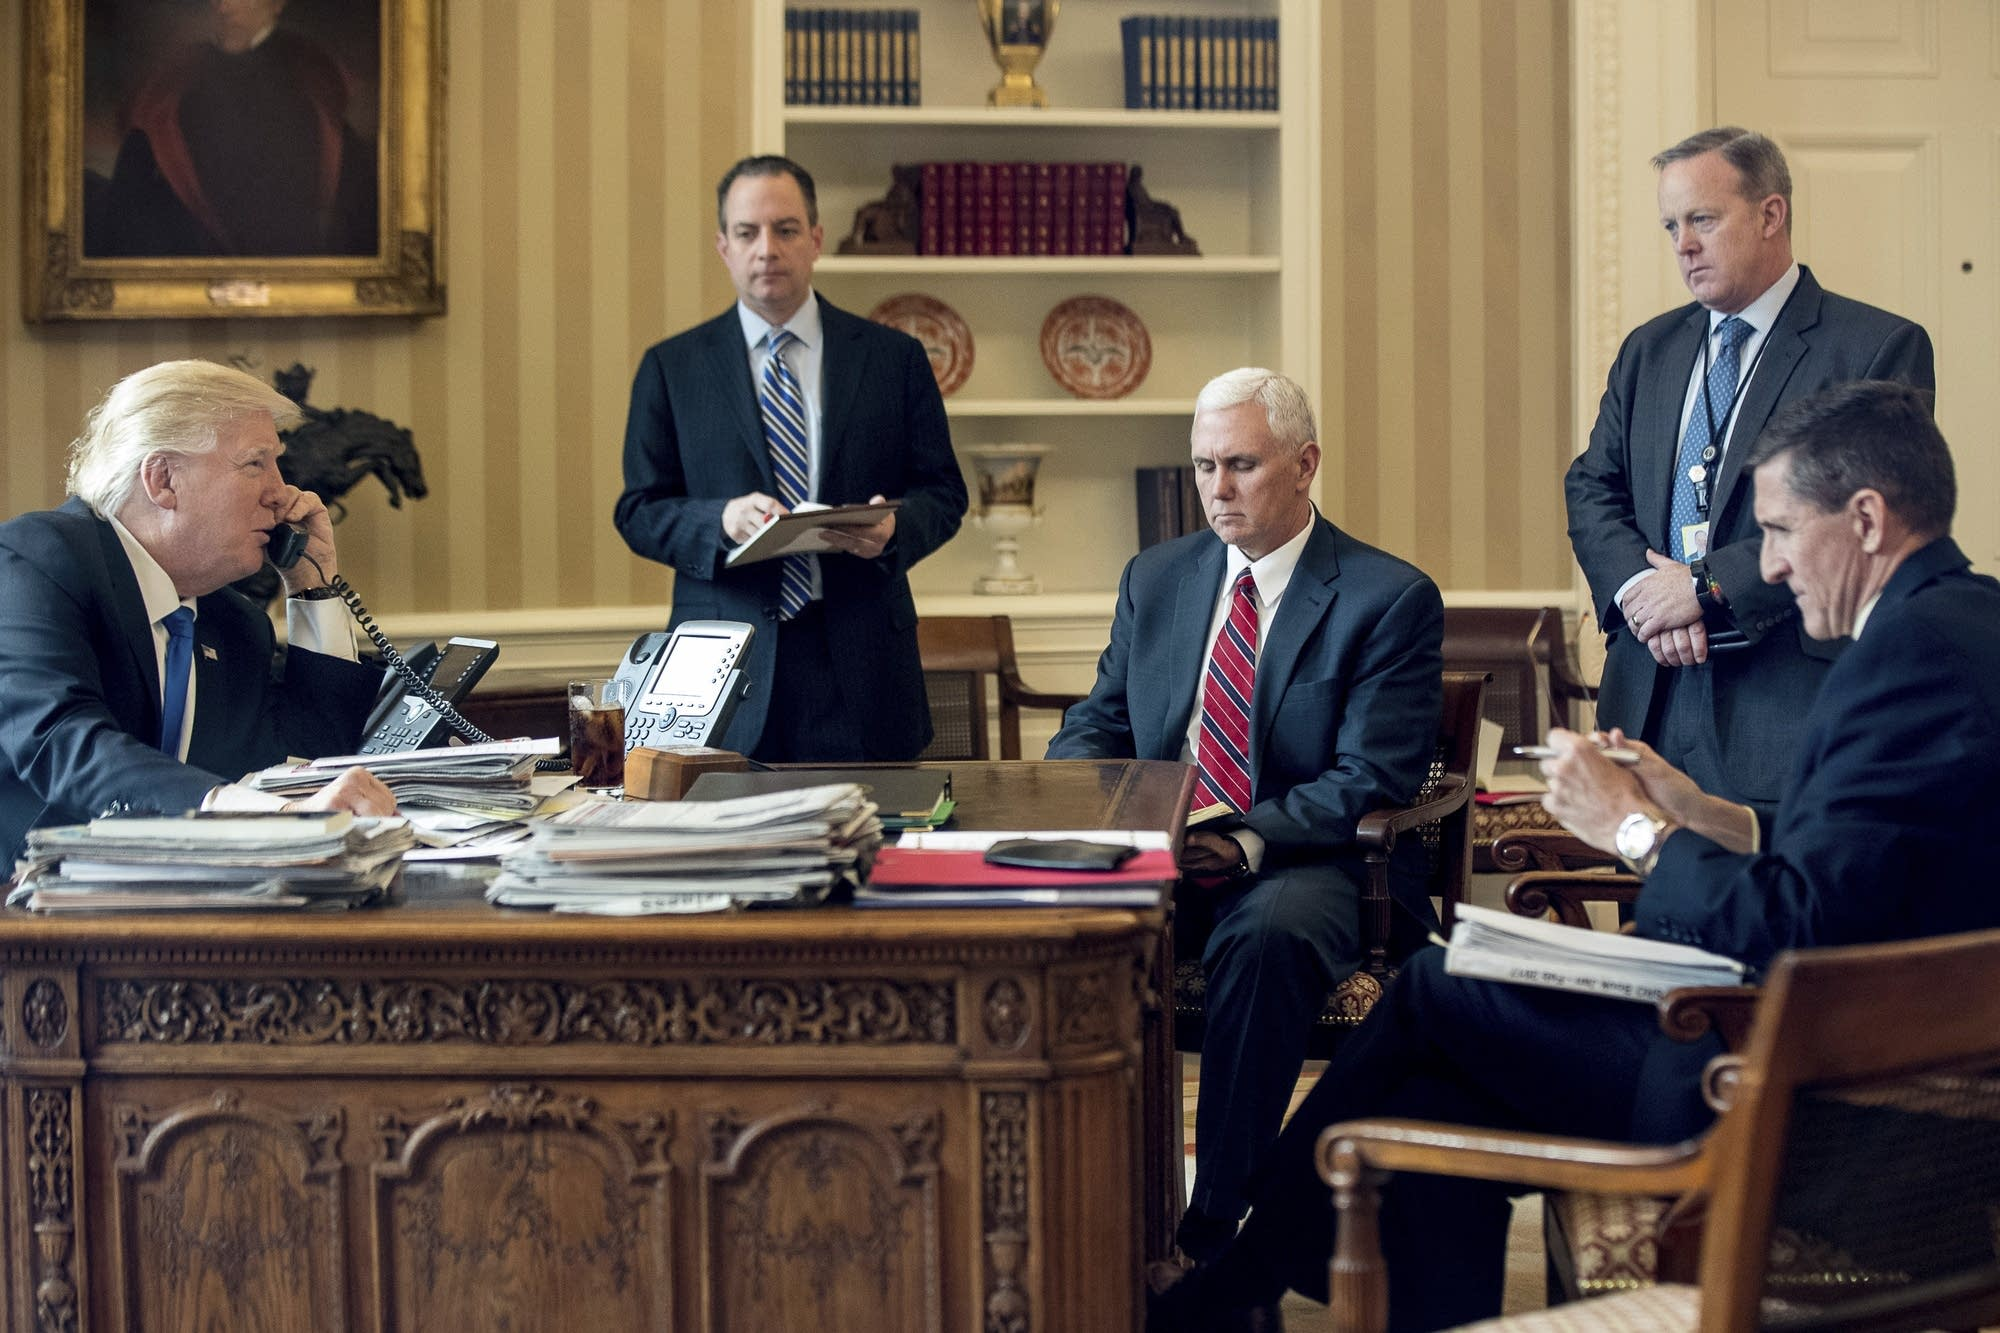 Donald Trump, Reince Priebus, Mike Pence, Sean Spicer and Michael Flynn